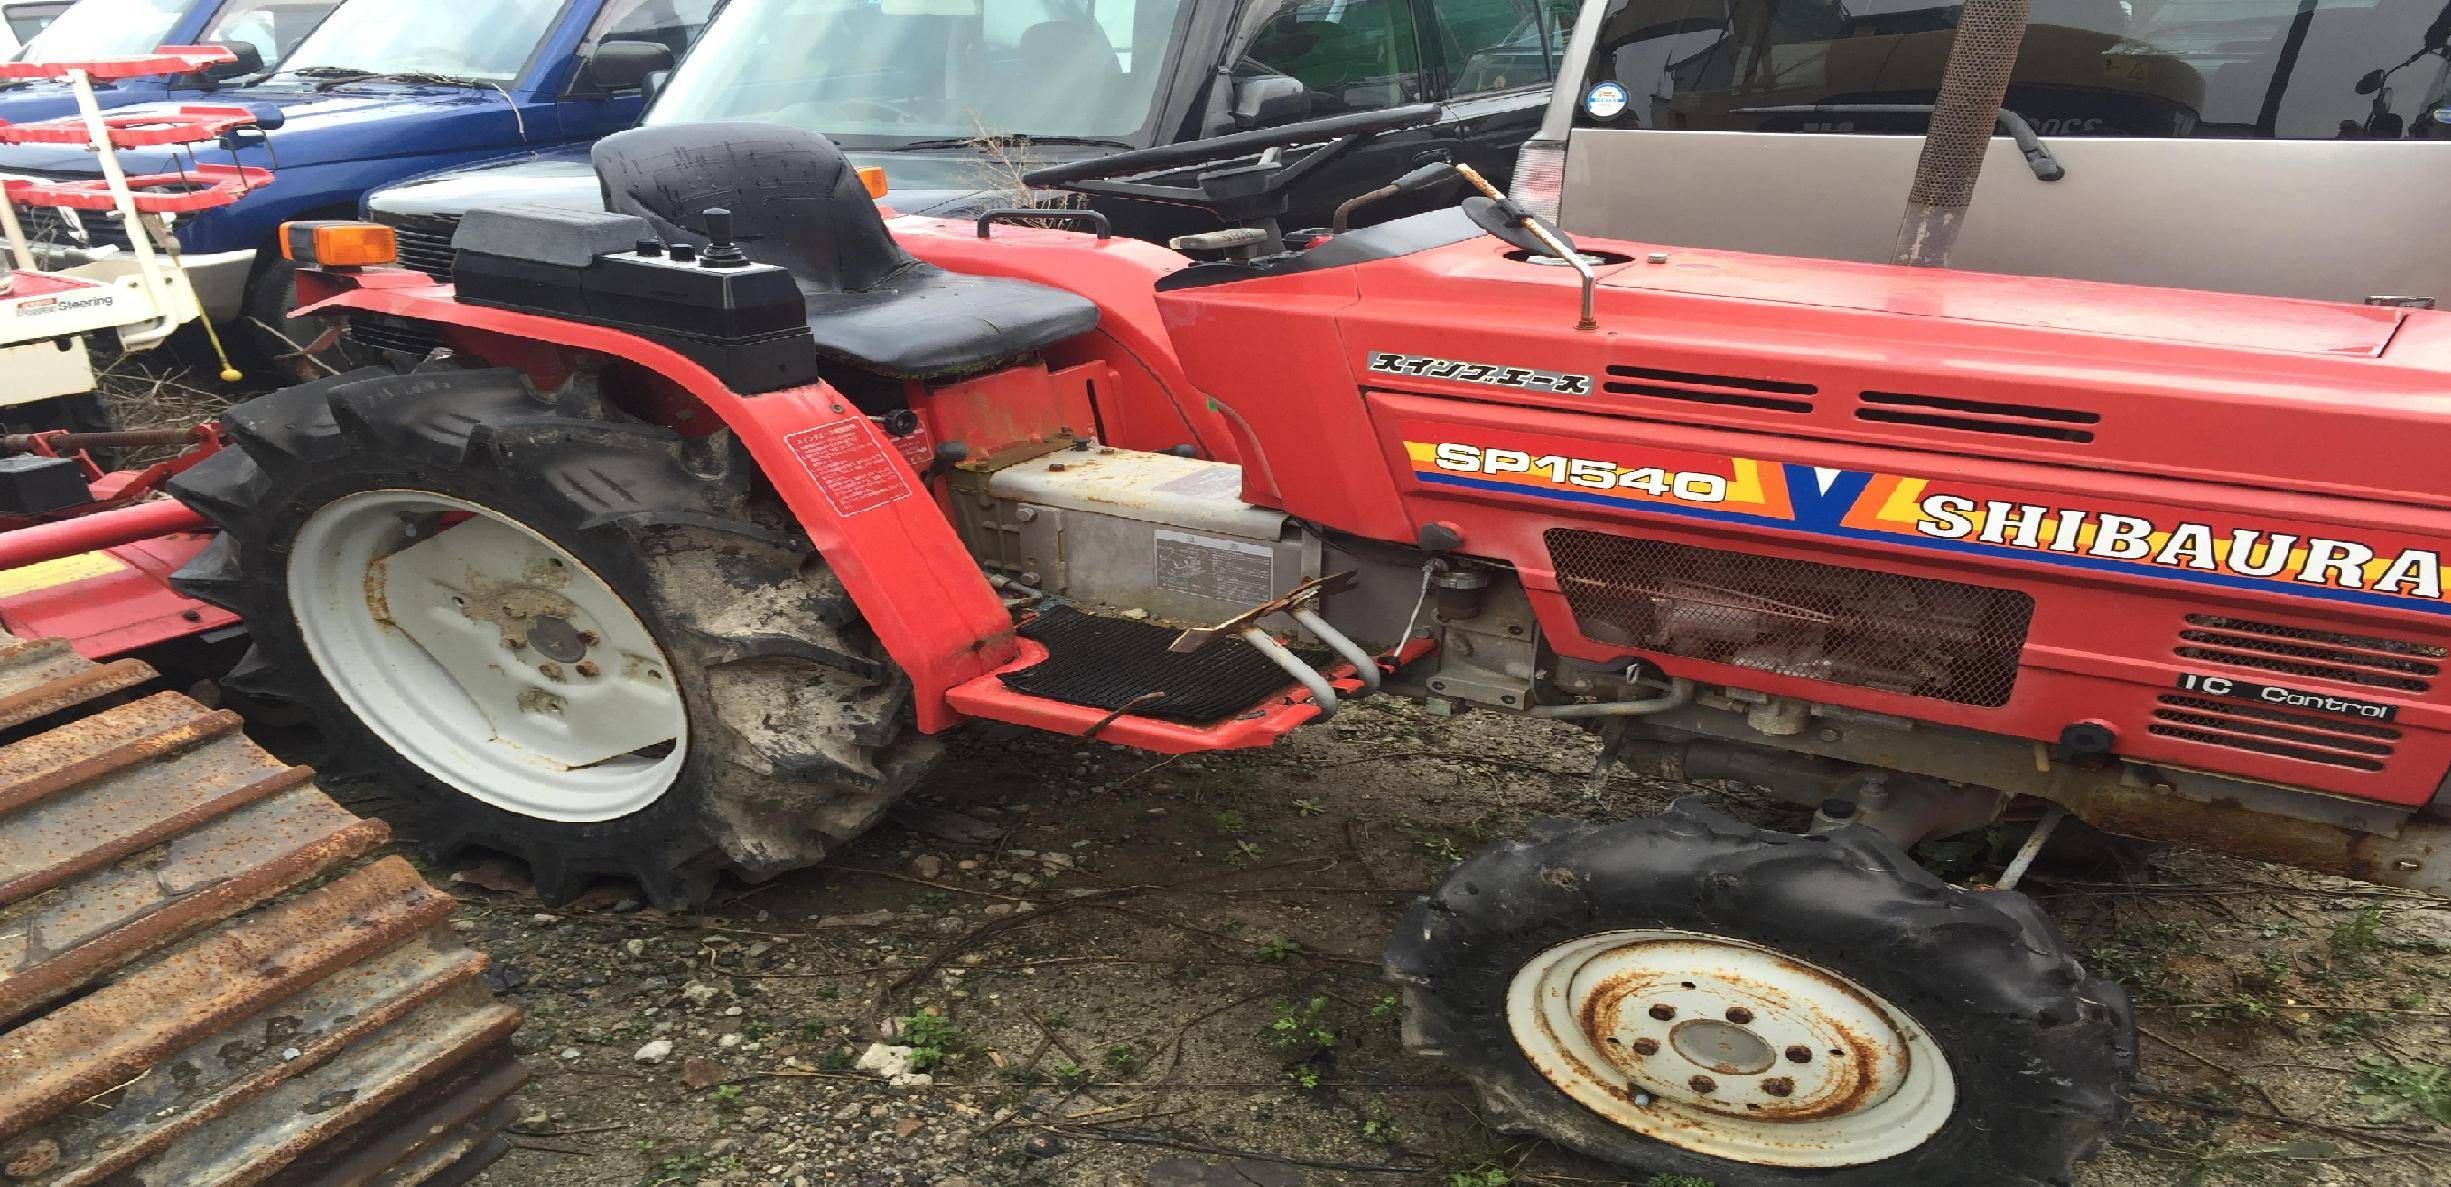 Used tractor Shibaura SP1540